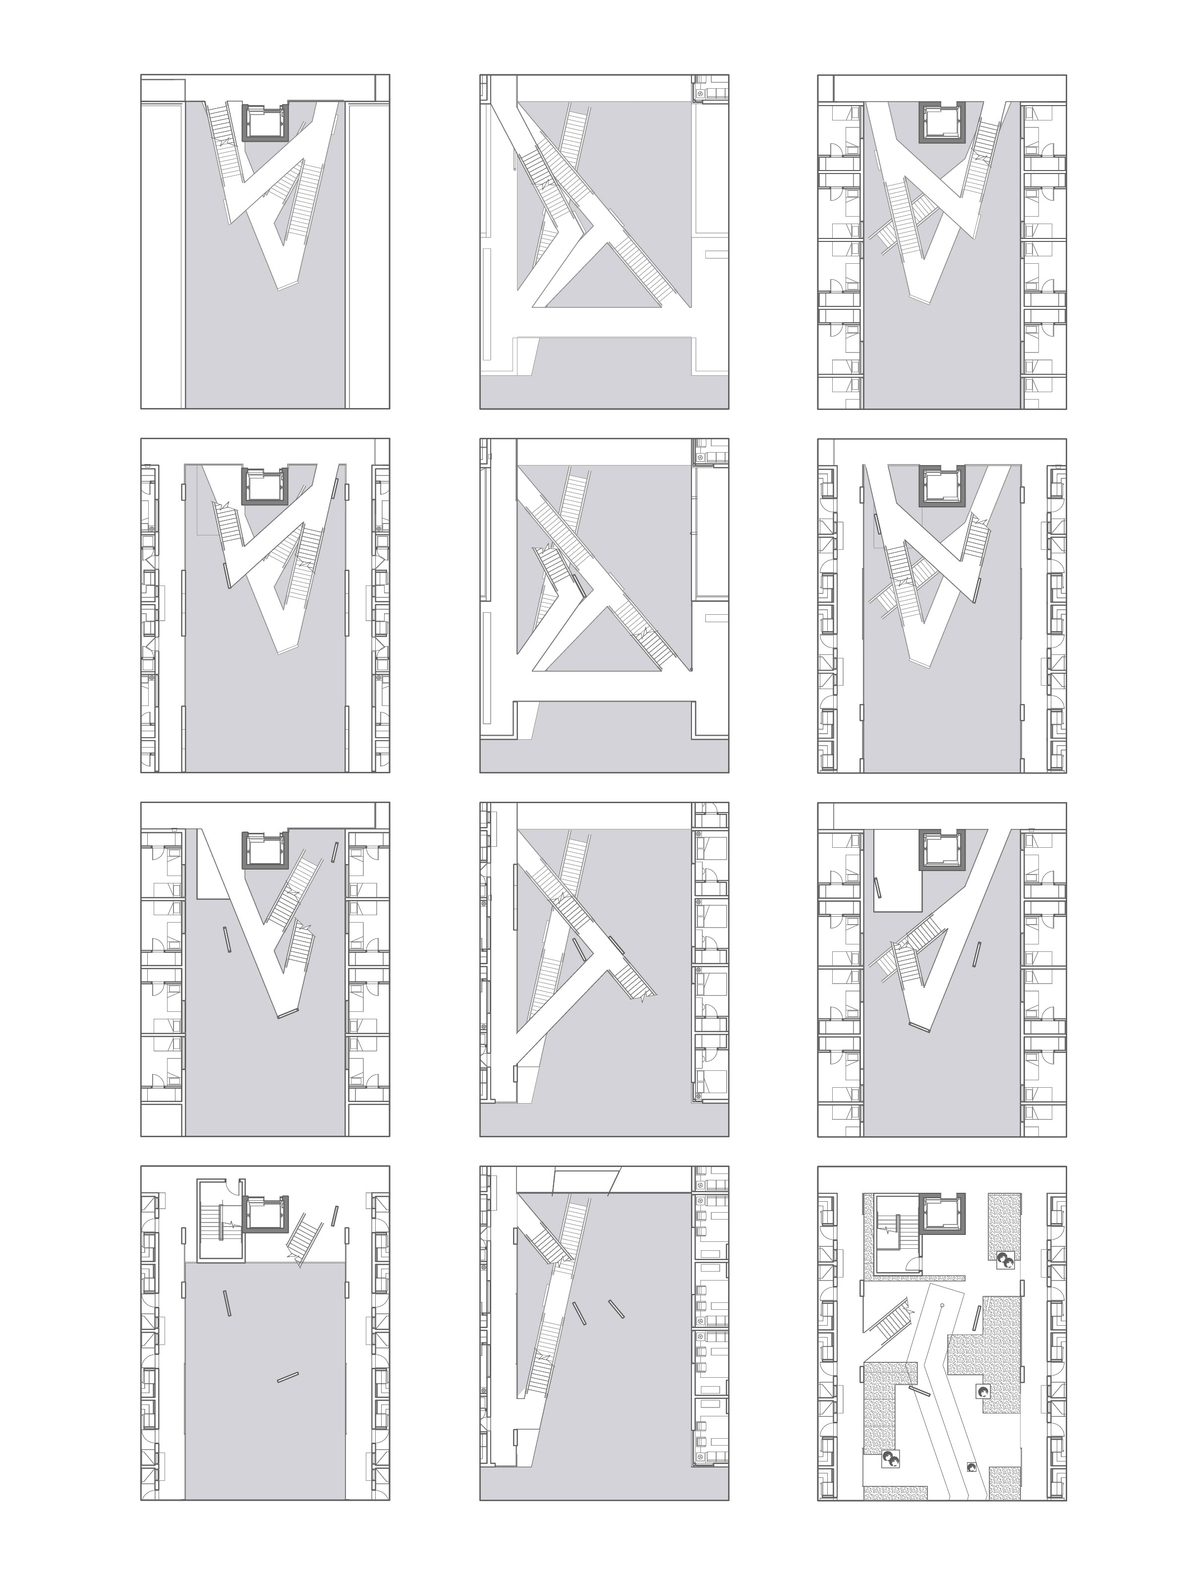 Courtyard Stair Plans